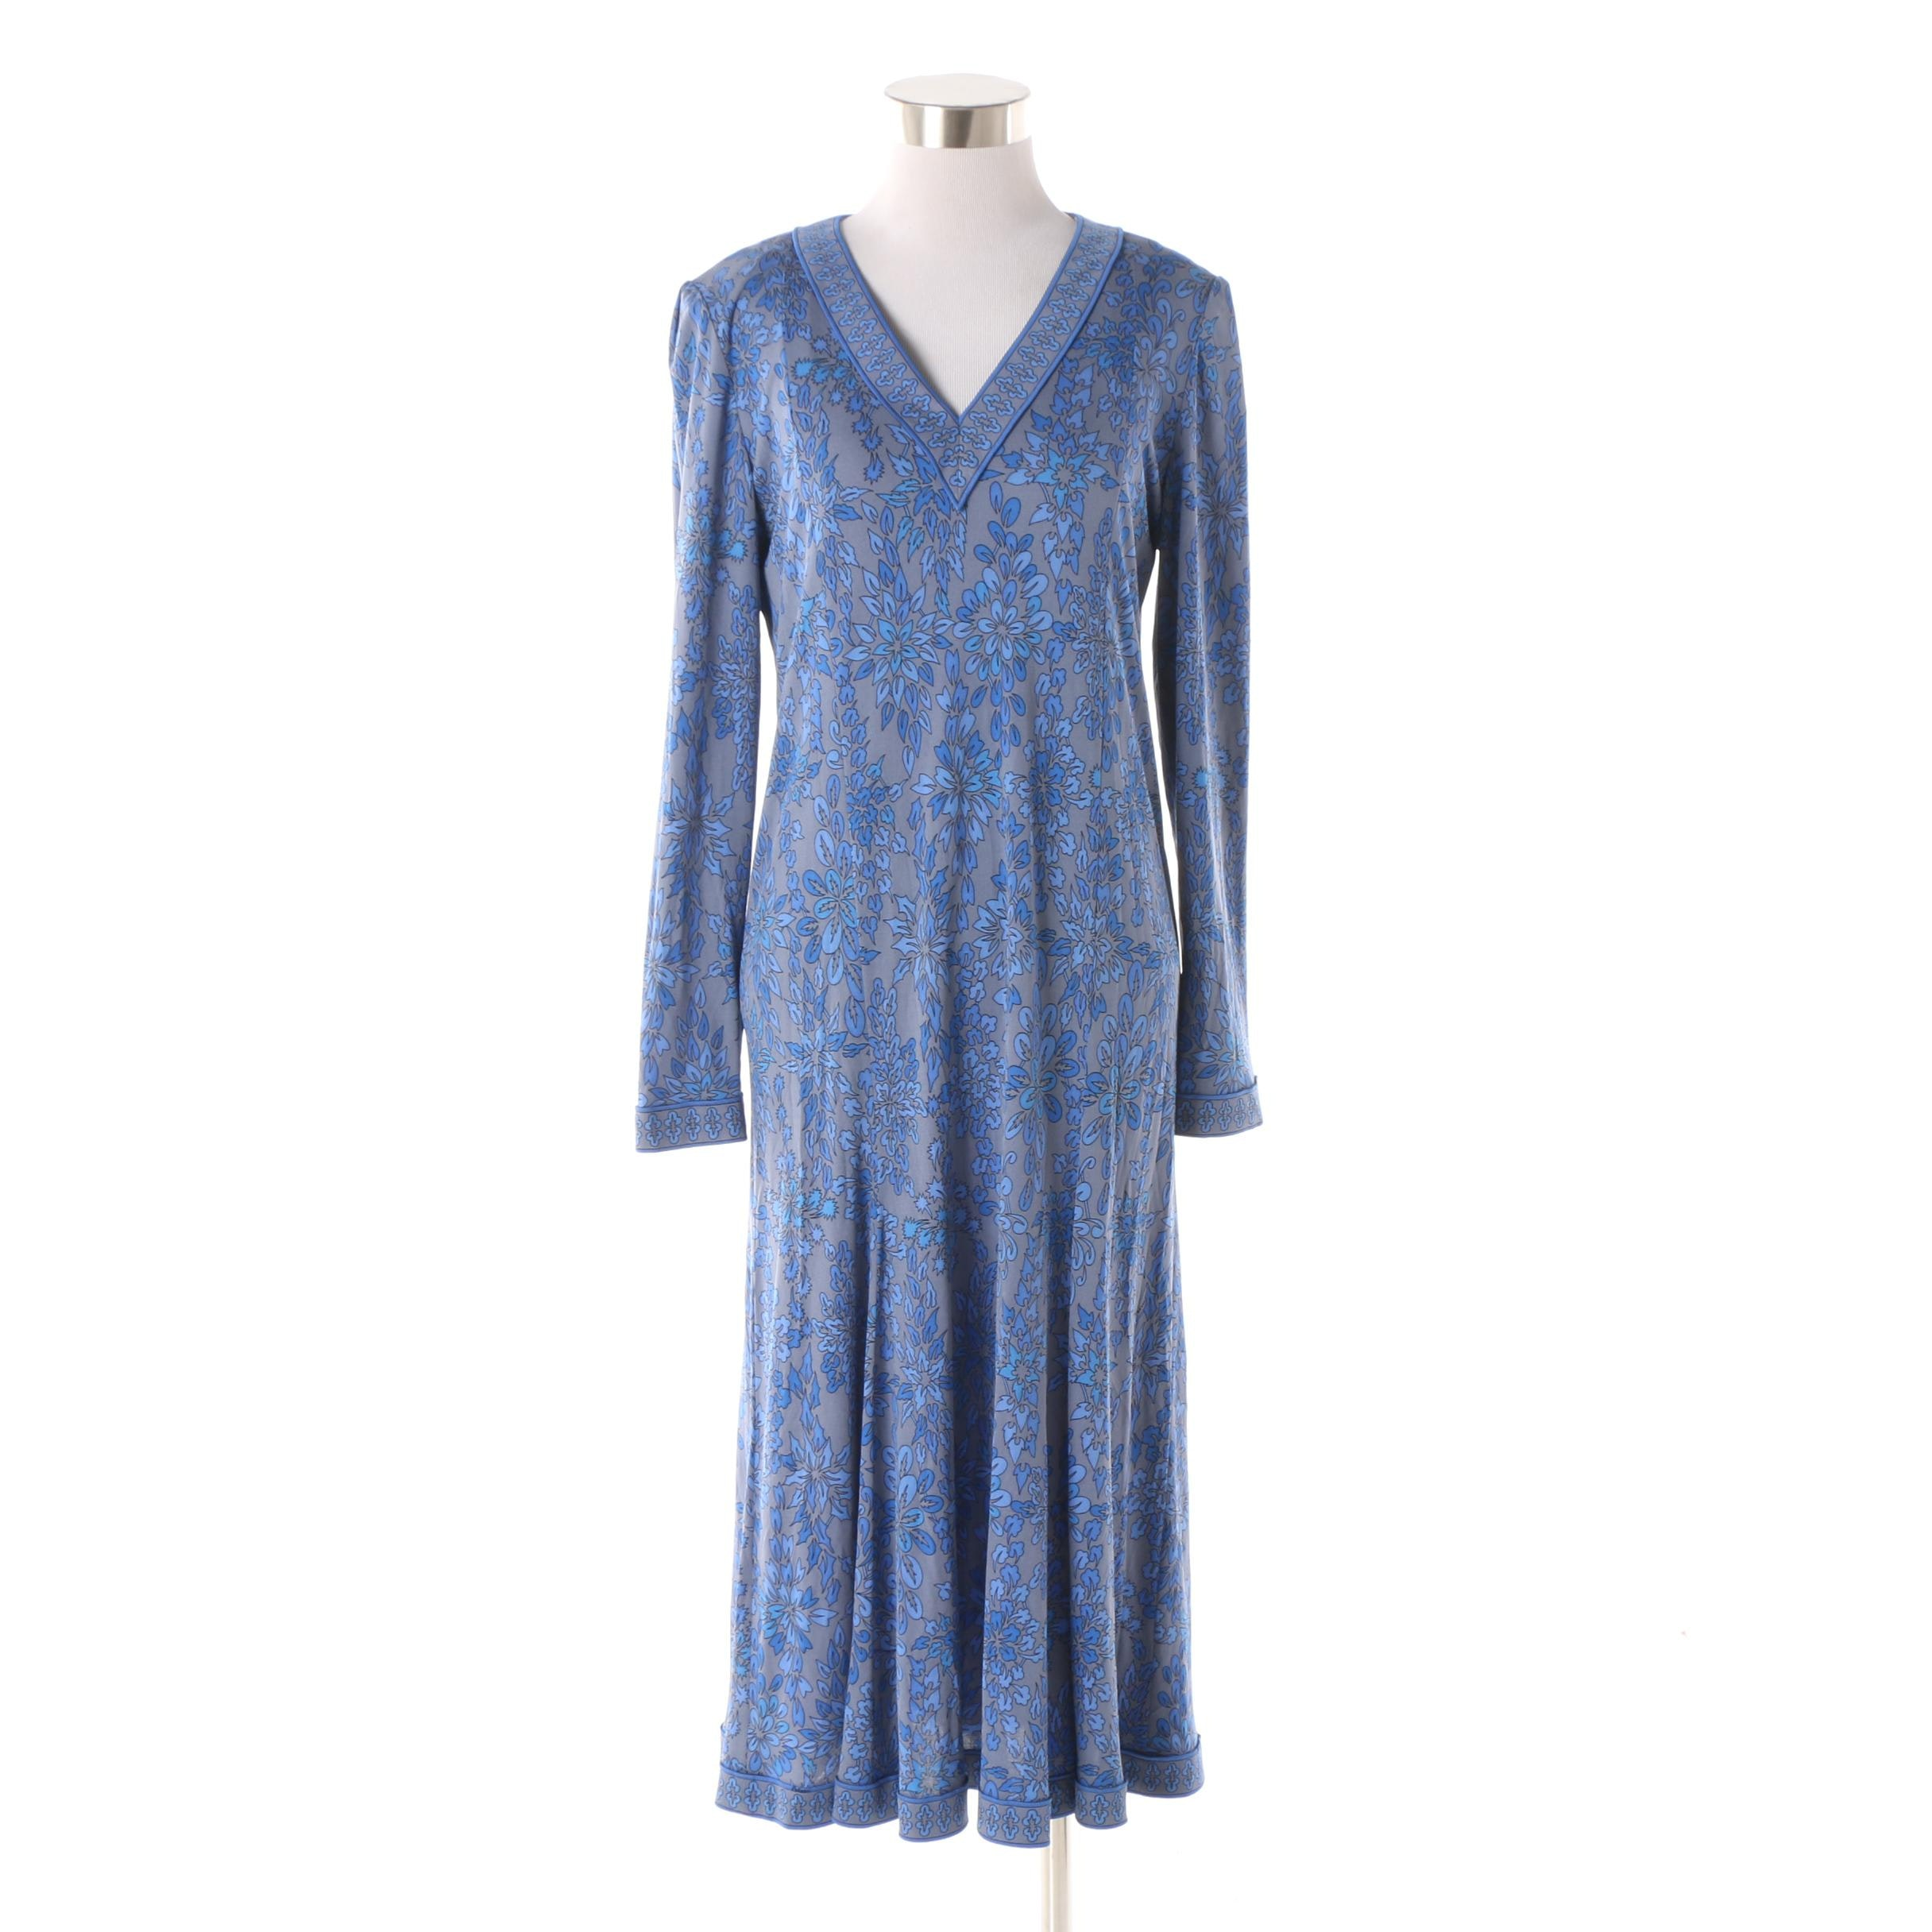 1970s Vintage Averardo Bessi Blue Floral Print Silk Jersey Dress